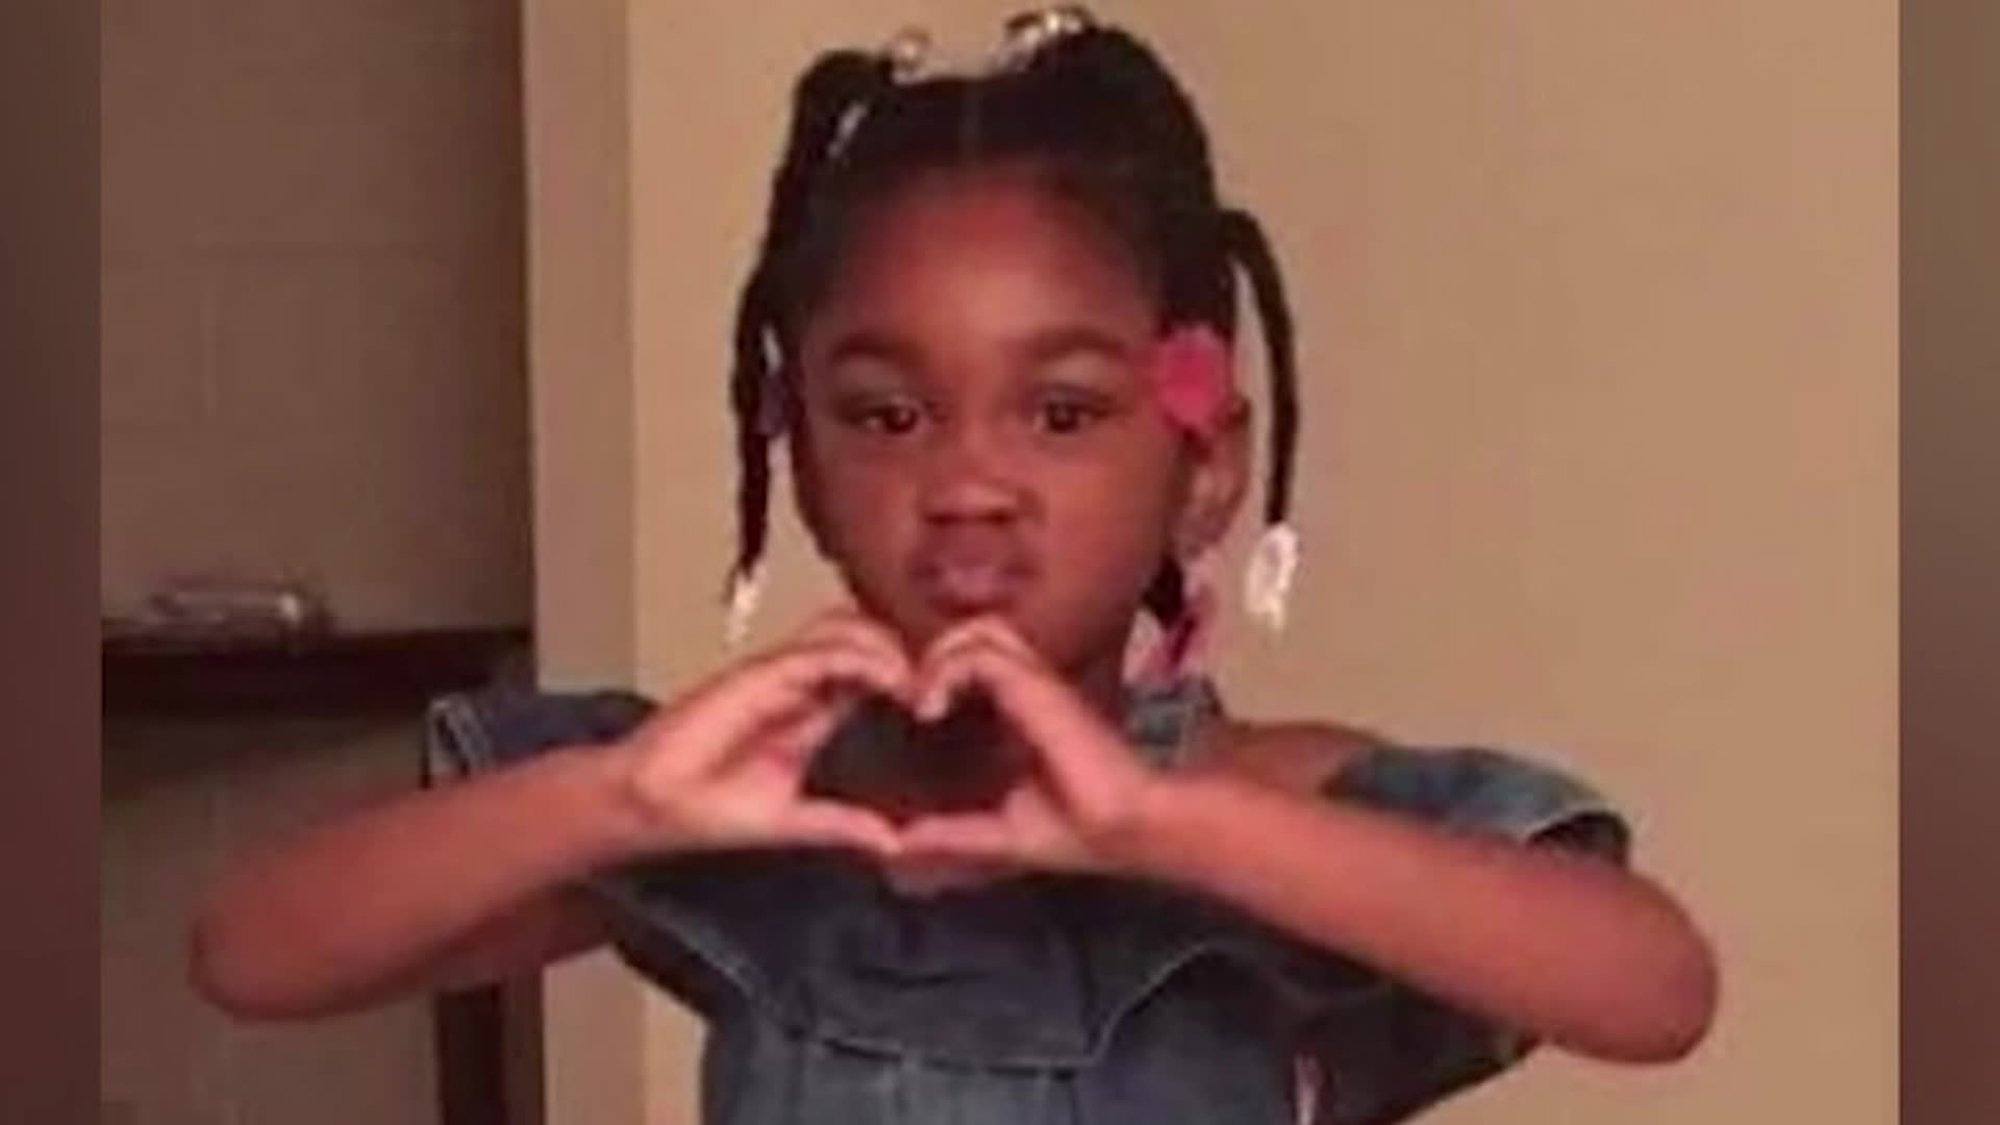 Remains found in a landfill identified as a missing South Carolina 5-year-old